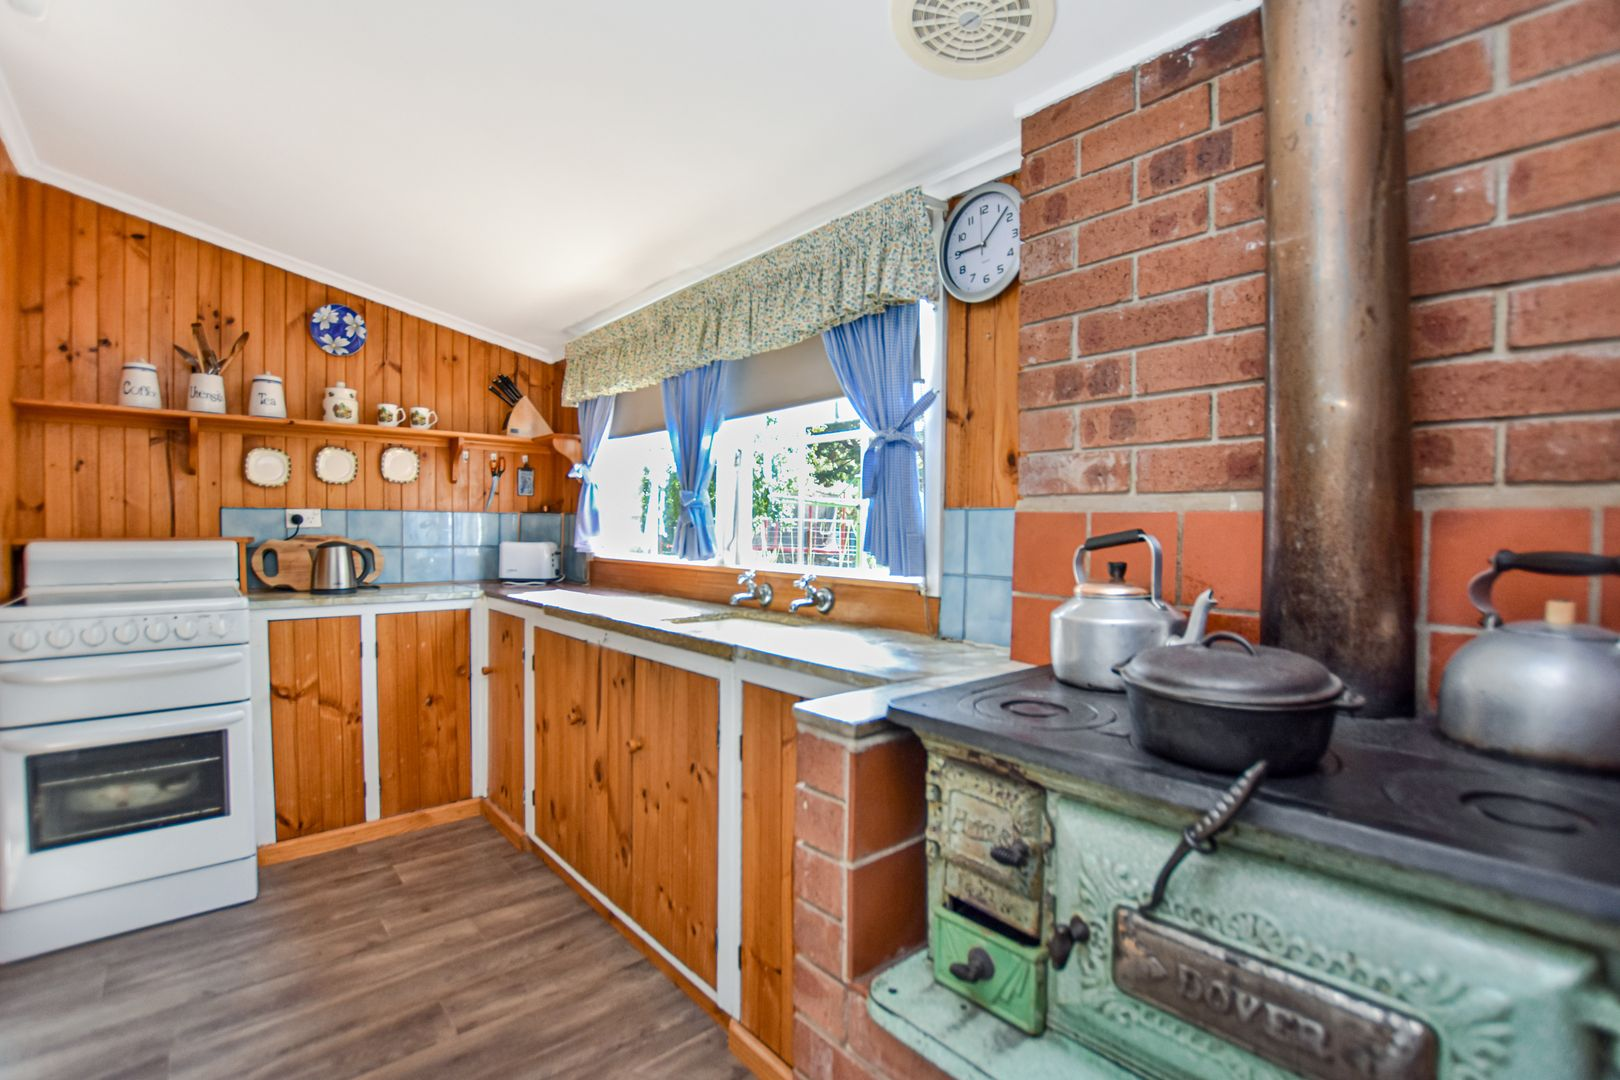 18-20 Lucknow Street, Spring Hill NSW 2800, Image 2